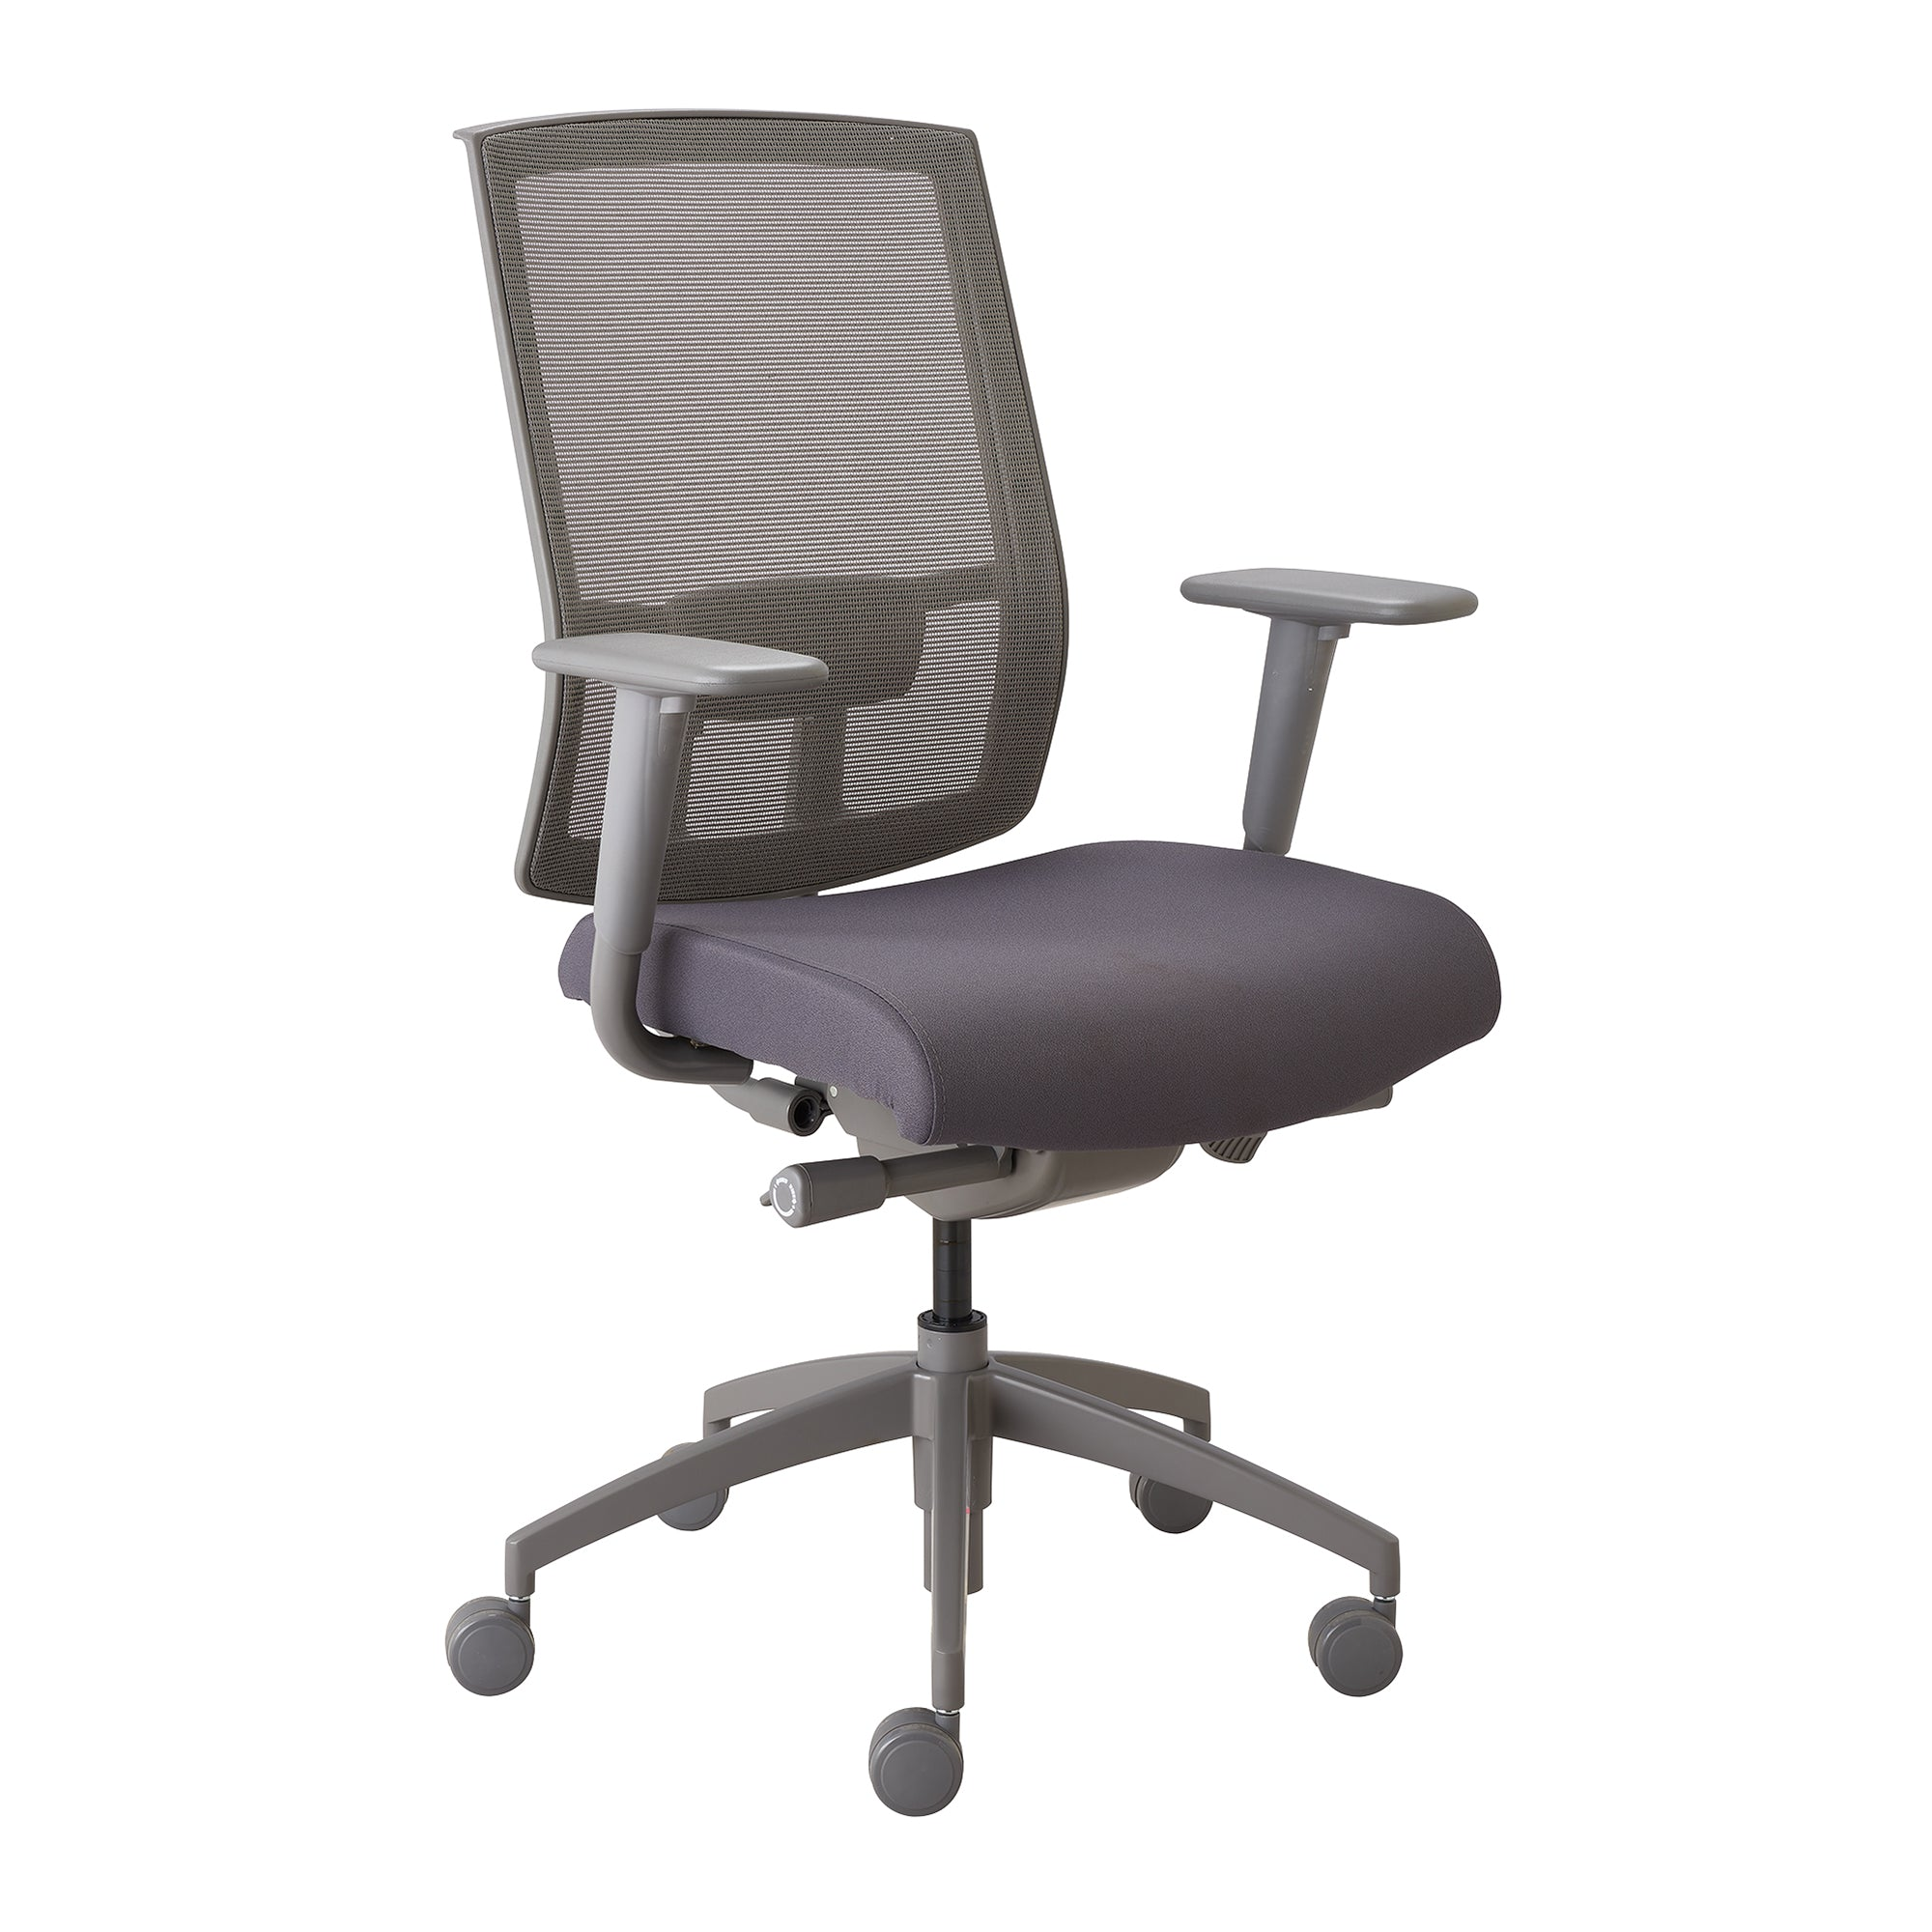 Quality Adjustable Office Chair in Gray